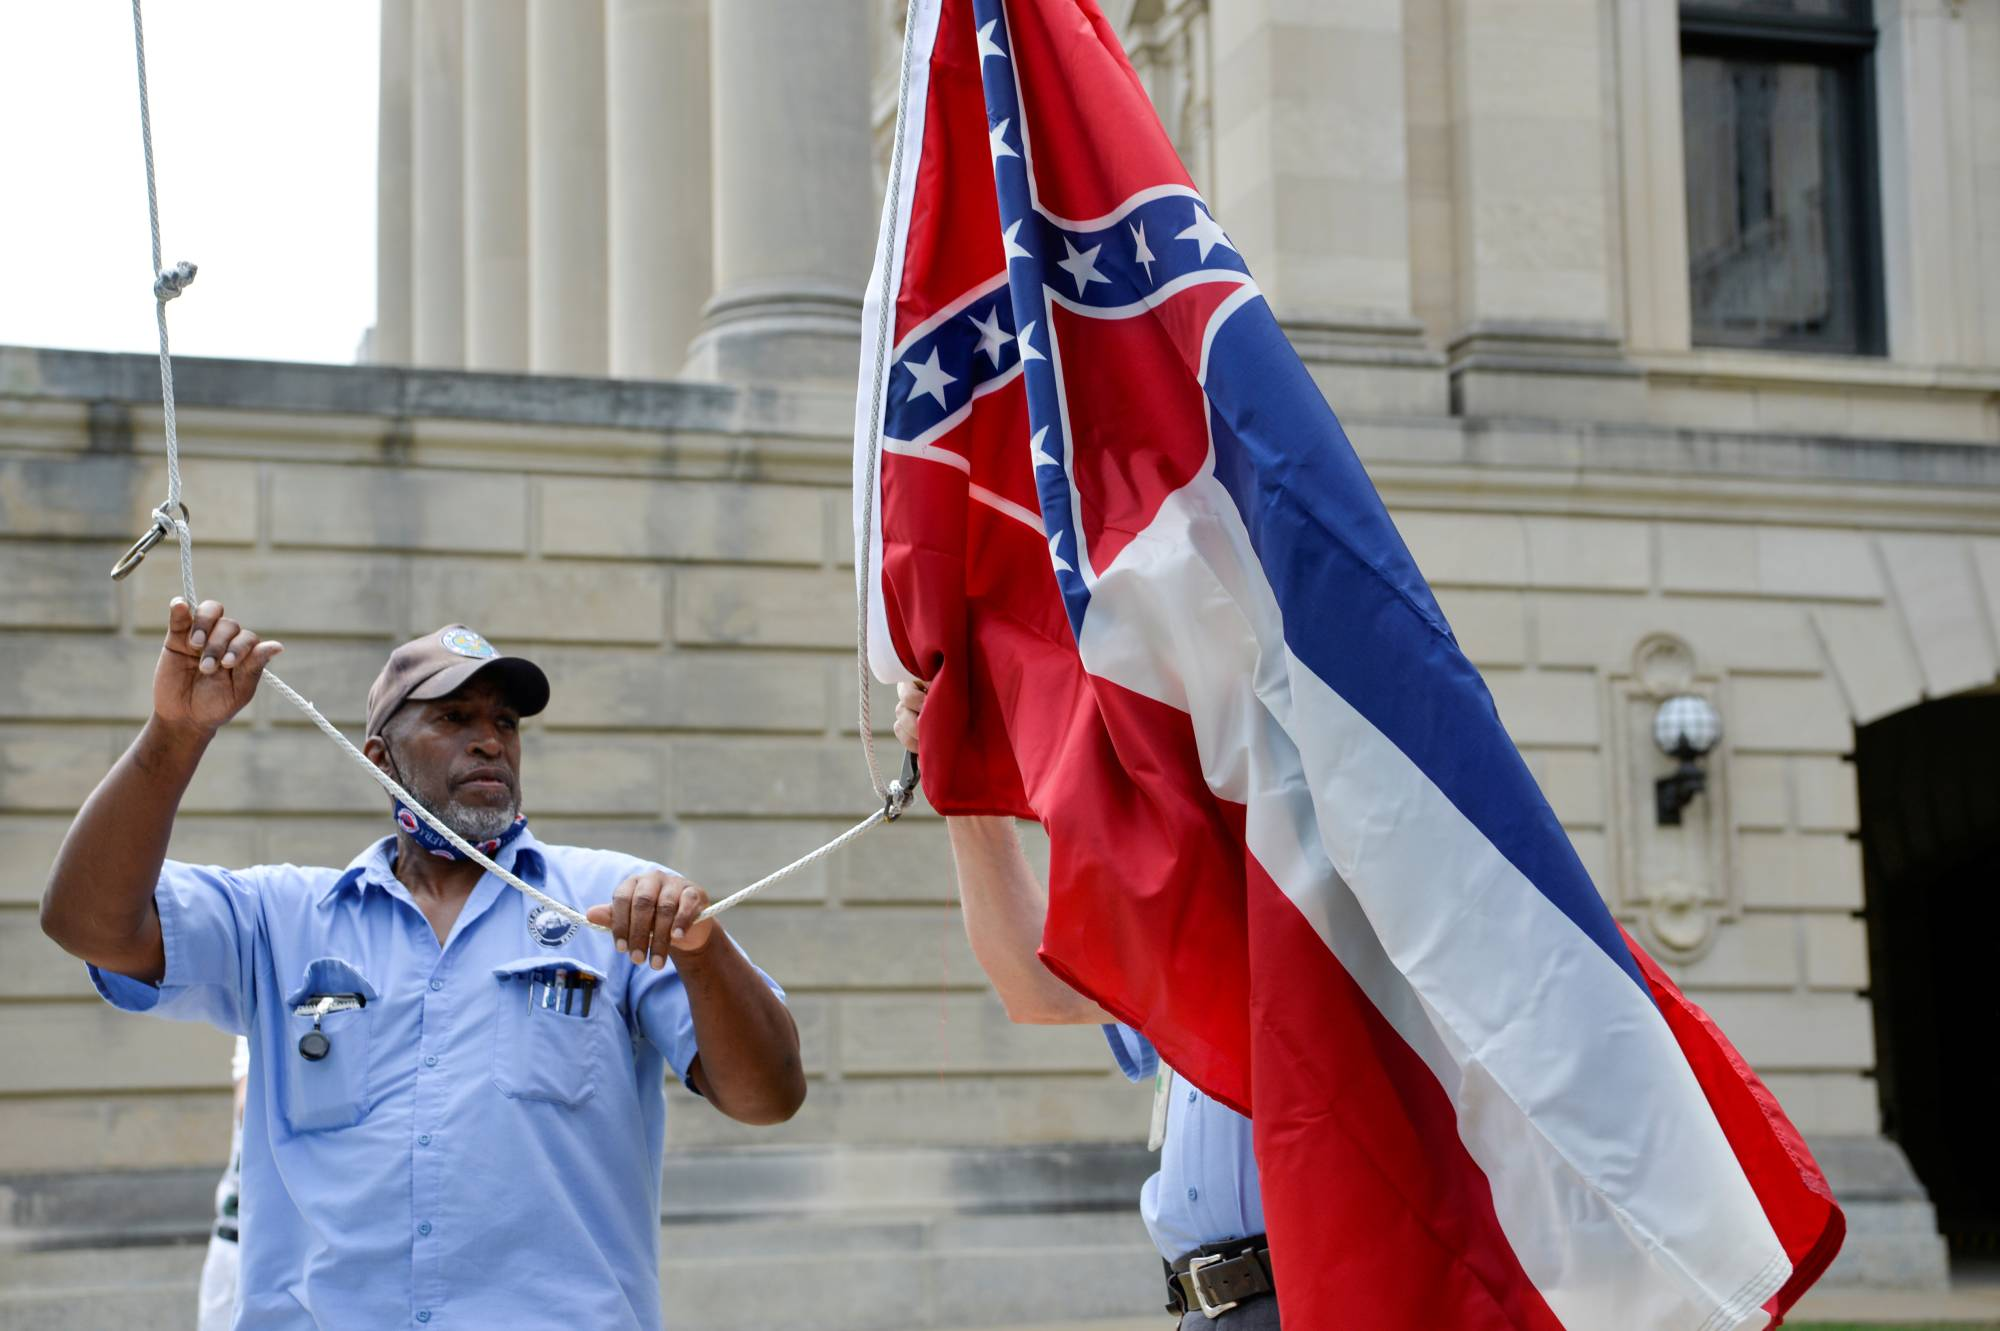 The Mississippi state flag, which prominently features the so-called Confederate battle flag, had flown above the state Capitol building in Jackson for 126 years. It was taken down this weekend after lawmakers approved a bill to replace it with a new flag.  | REUTERS